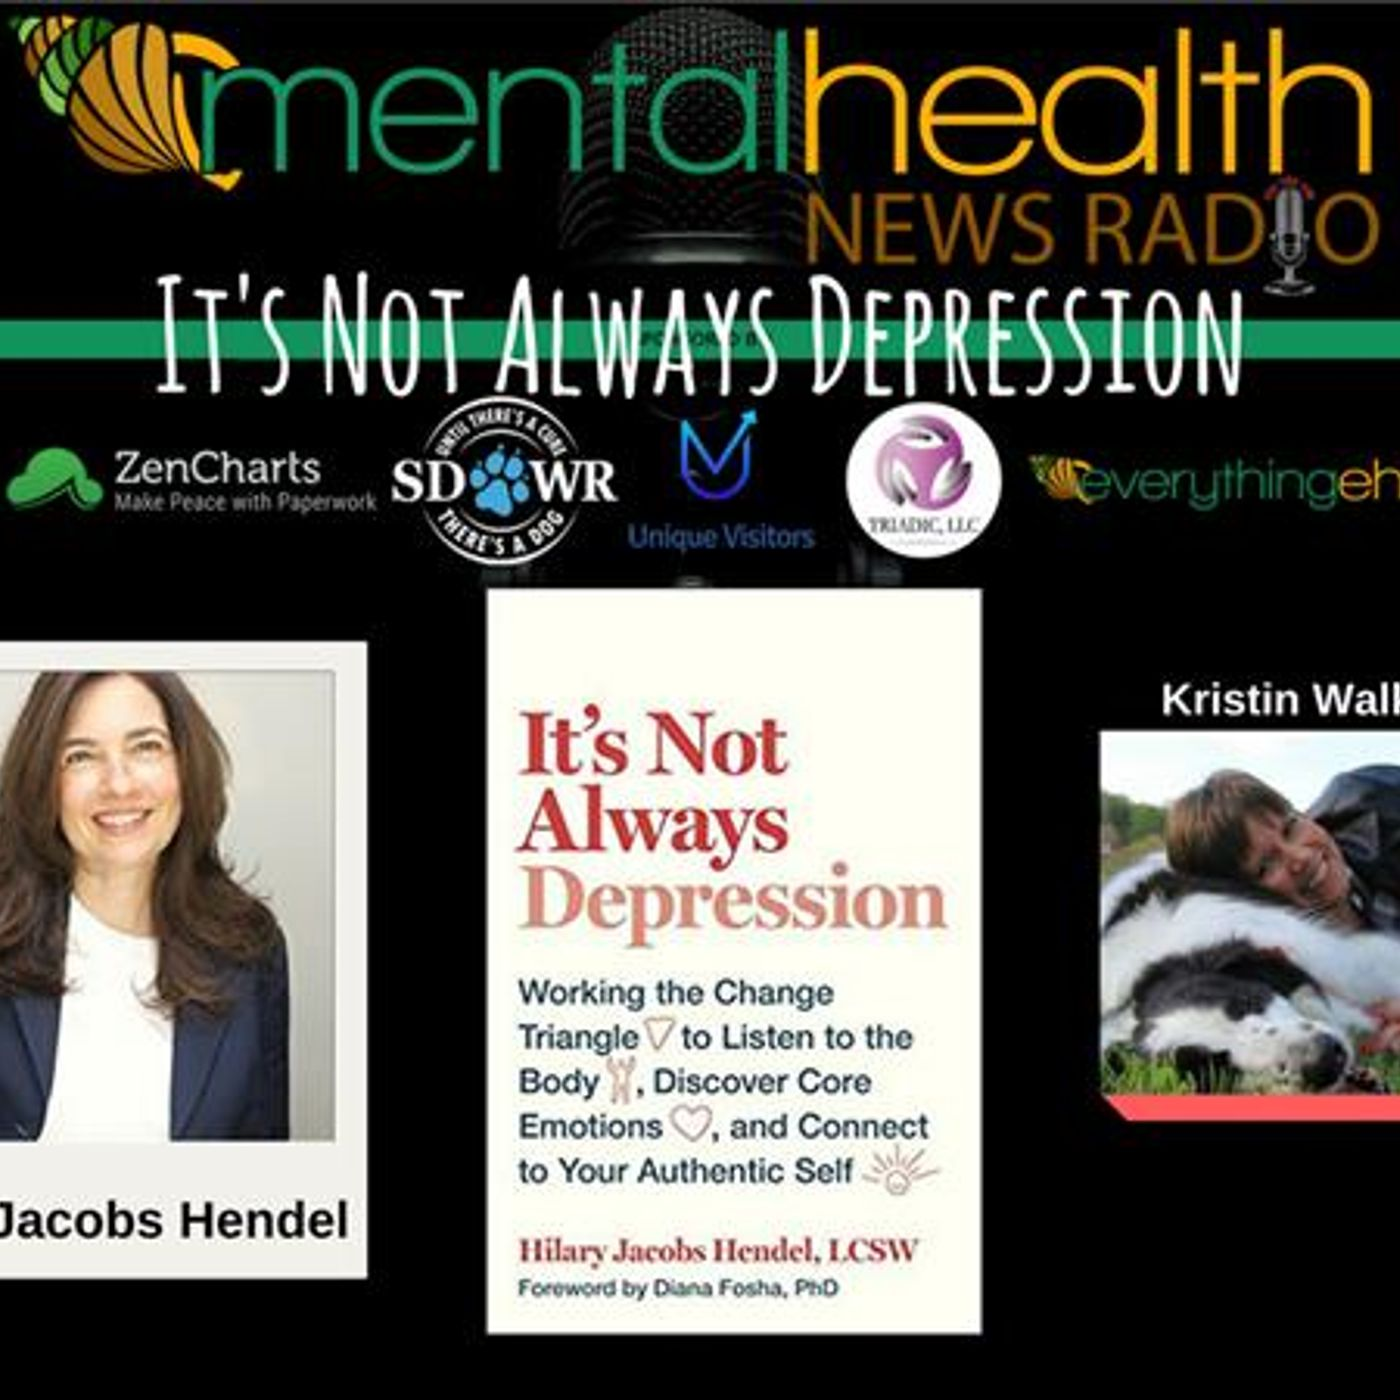 Mental Health News Radio - It's Not Always Depression with Hilary Jacobs Hendel, LCSW